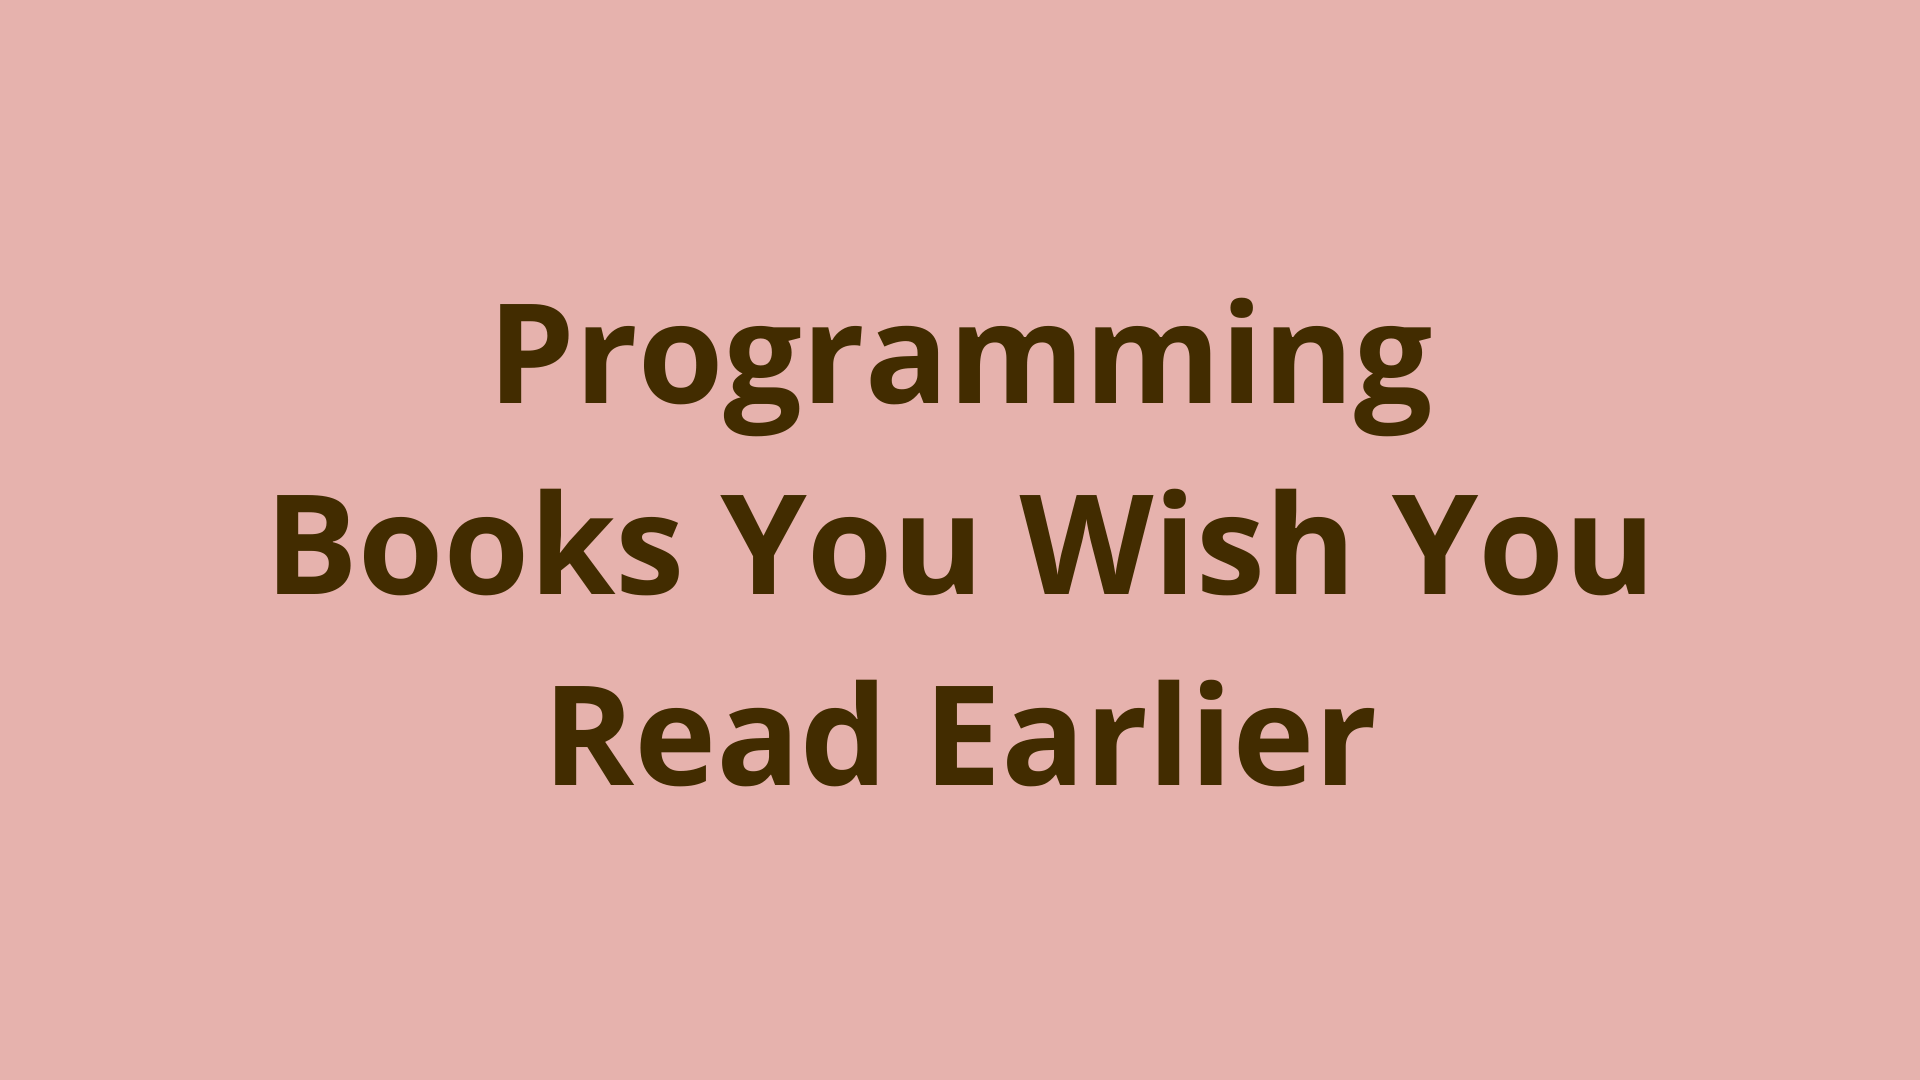 Image of Programming books you wish you read earlier